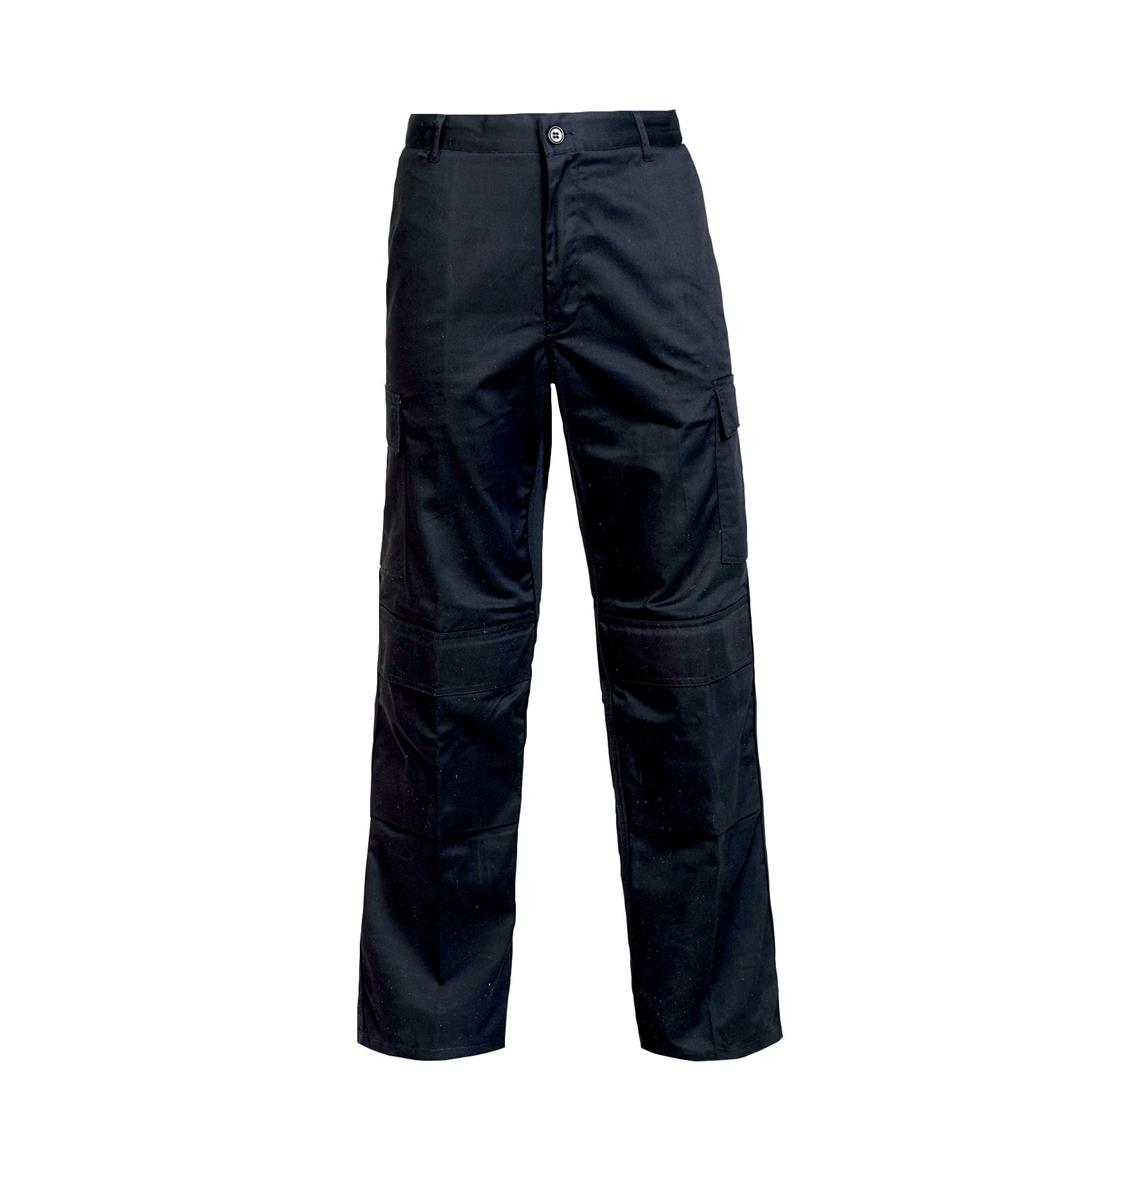 Combat Trousers Polycotton with Pockets 32in Regular Black Ref PCTHWBL32 *1-3 Days Lead Time*